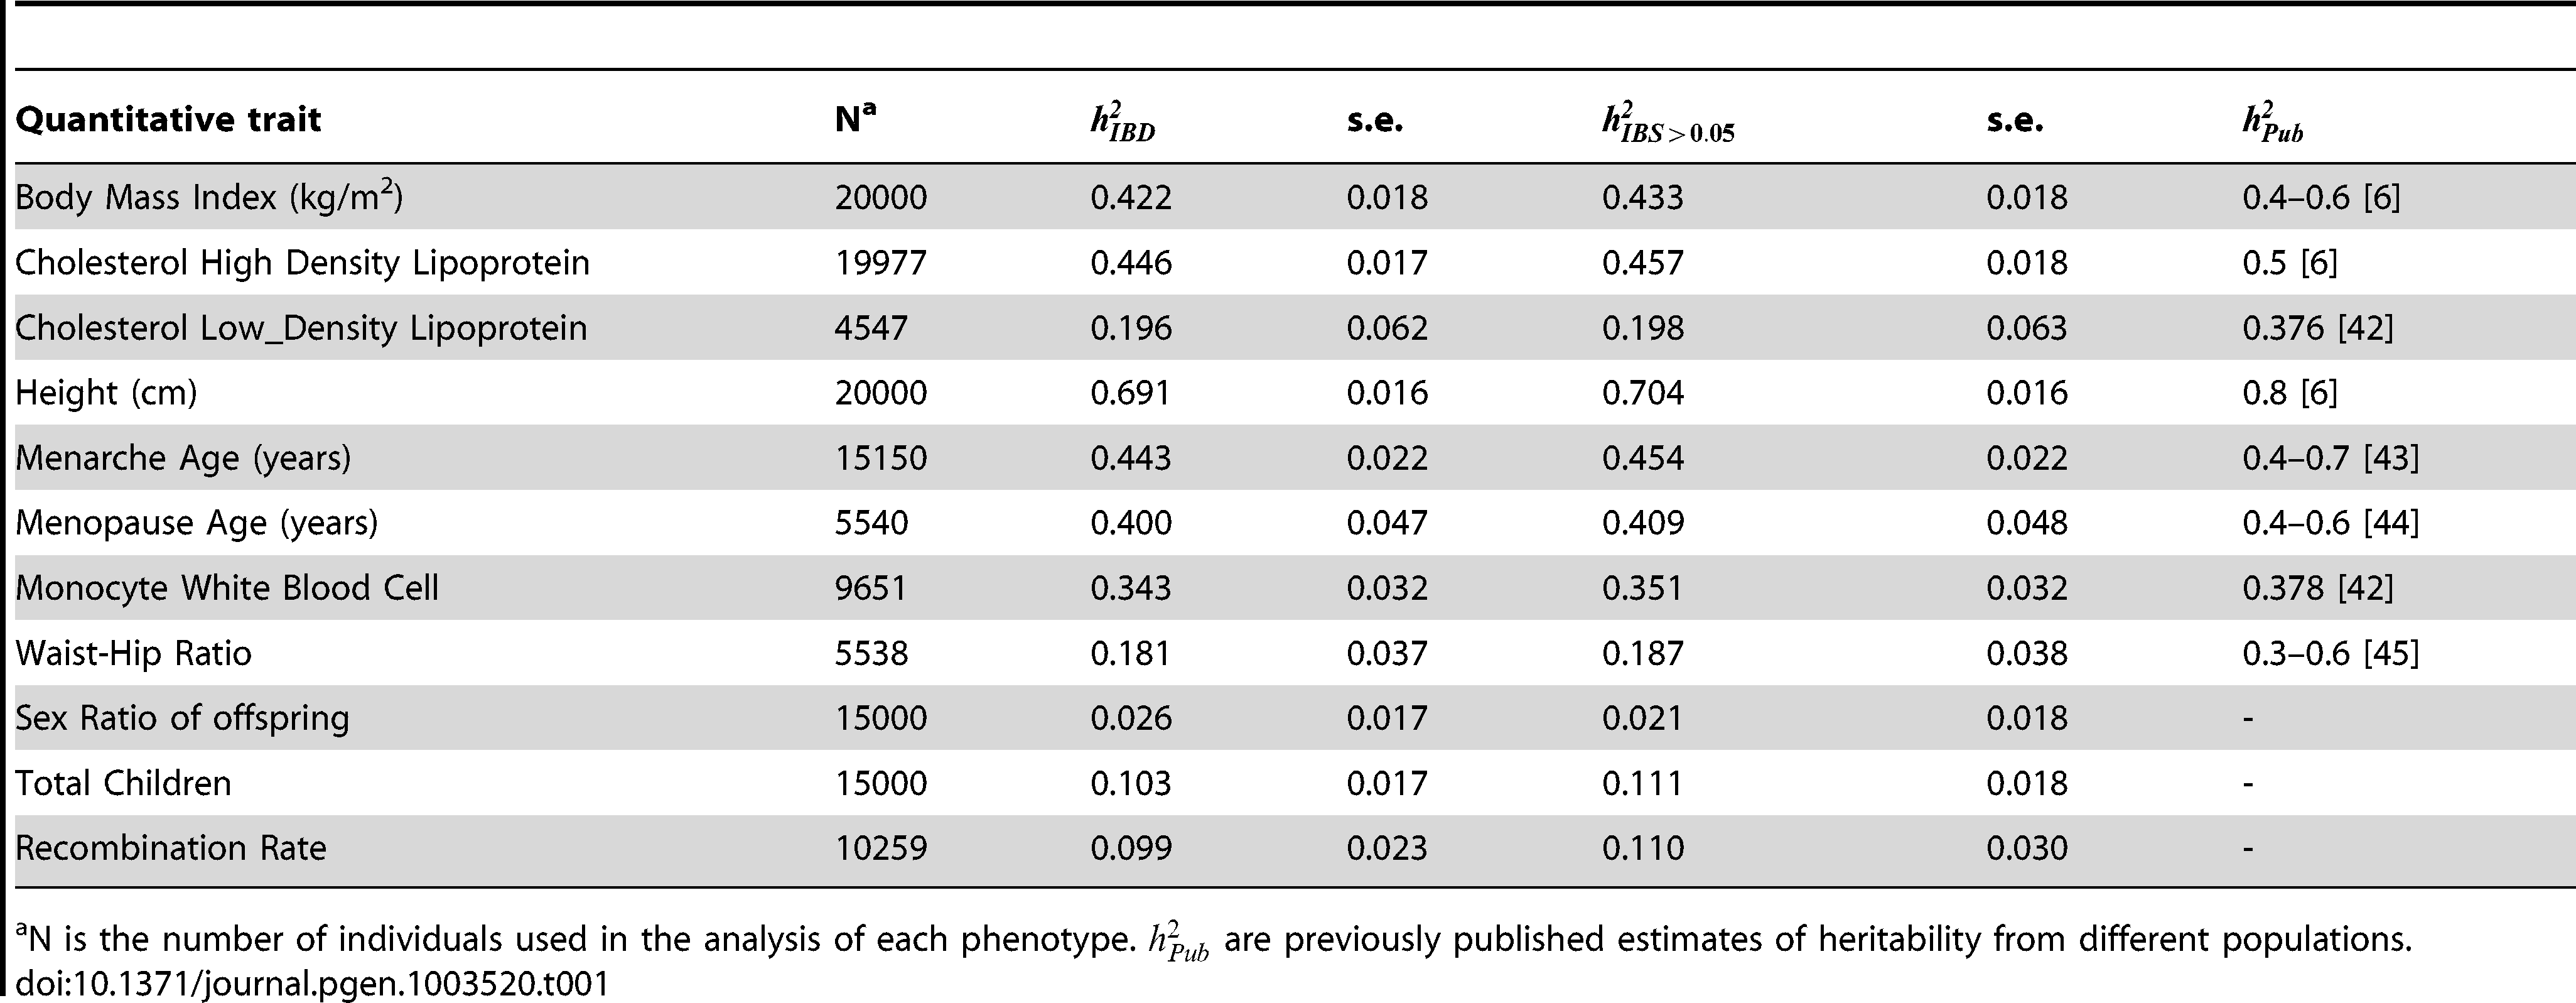 Narrow-sense heritability estimated from IBD () and thresholding IBS () for 11 quantitative traits.